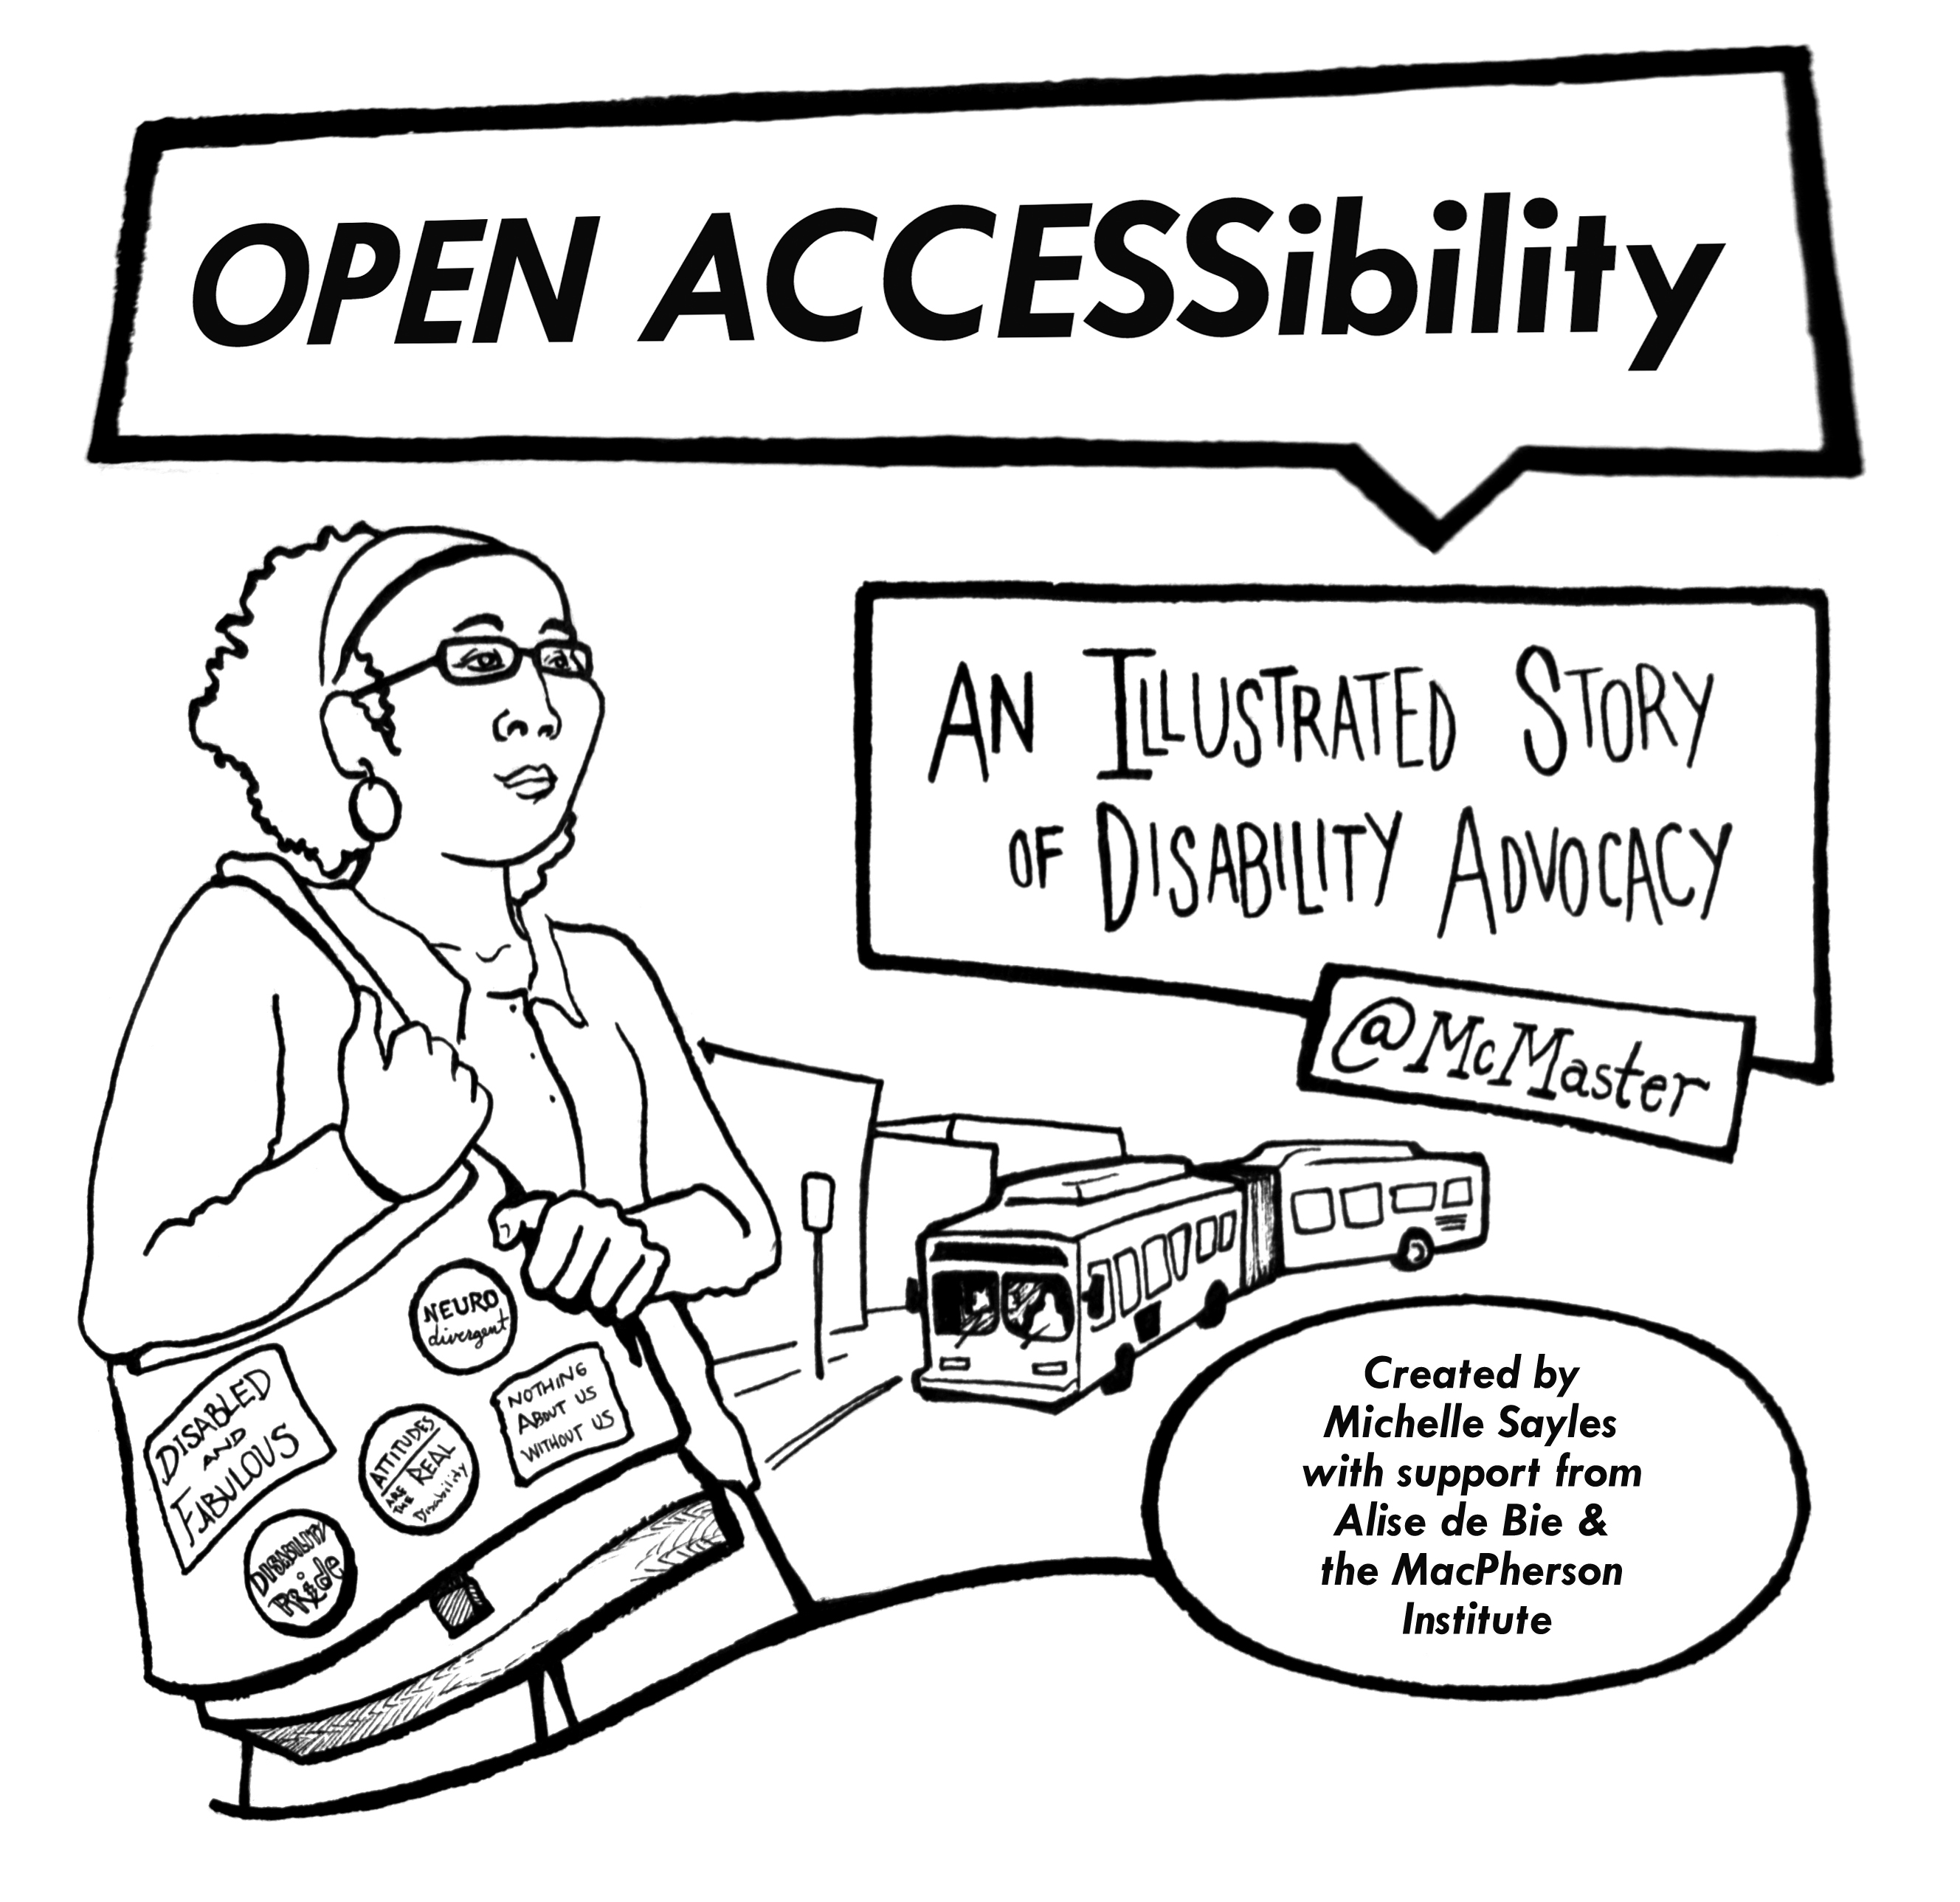 Open Accessibility: An Illustrated Story of Disability Advocacy by Michelle Sayles and with support from Alise de Bie